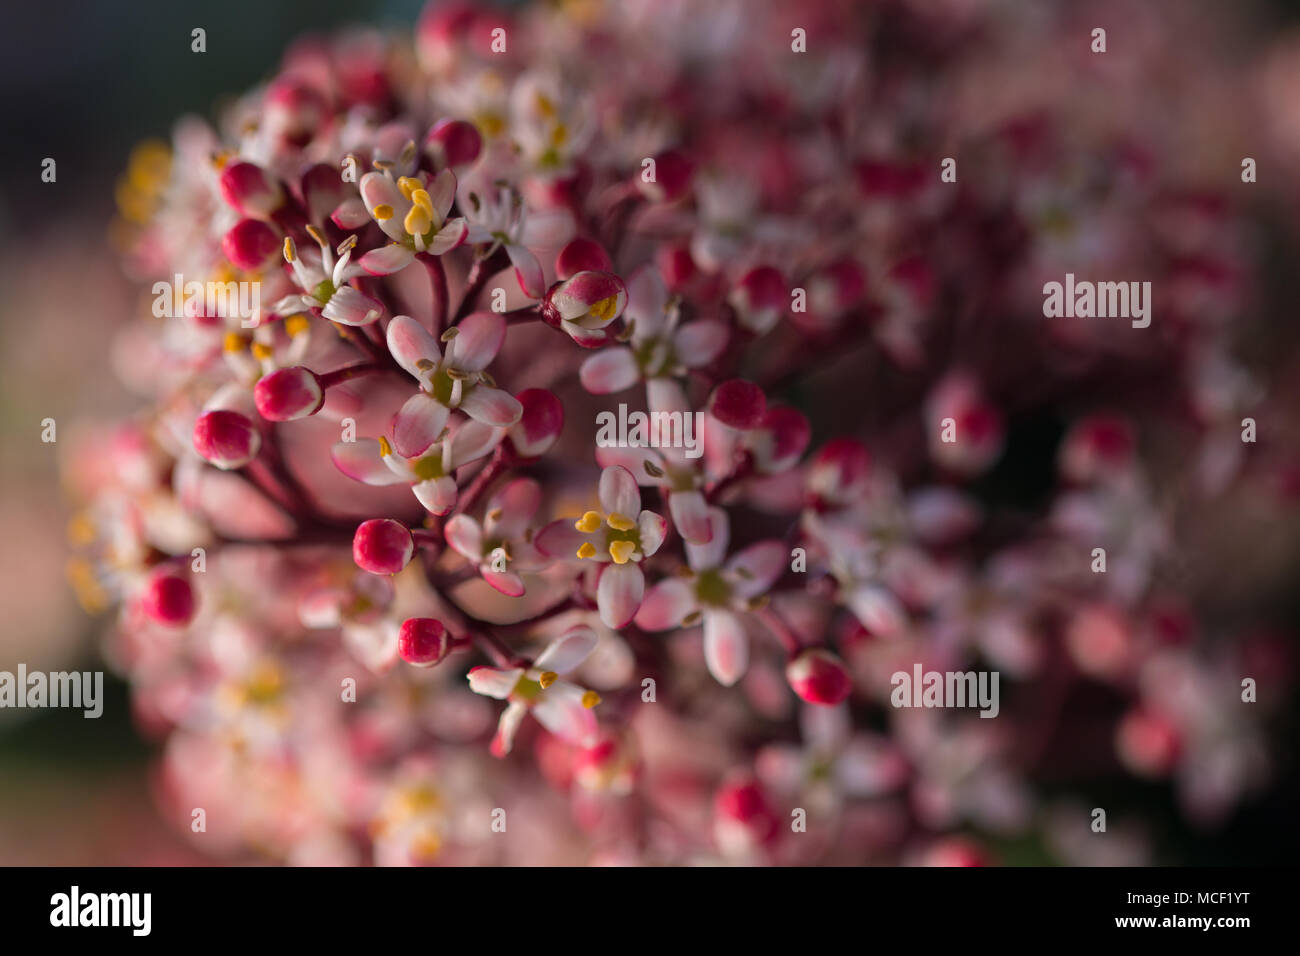 Male flowers of the Skimmia Japonica Rubella, close up image showing delicate pink and white flowers with a yellow centre, Shepperton, England U.K. - Stock Image